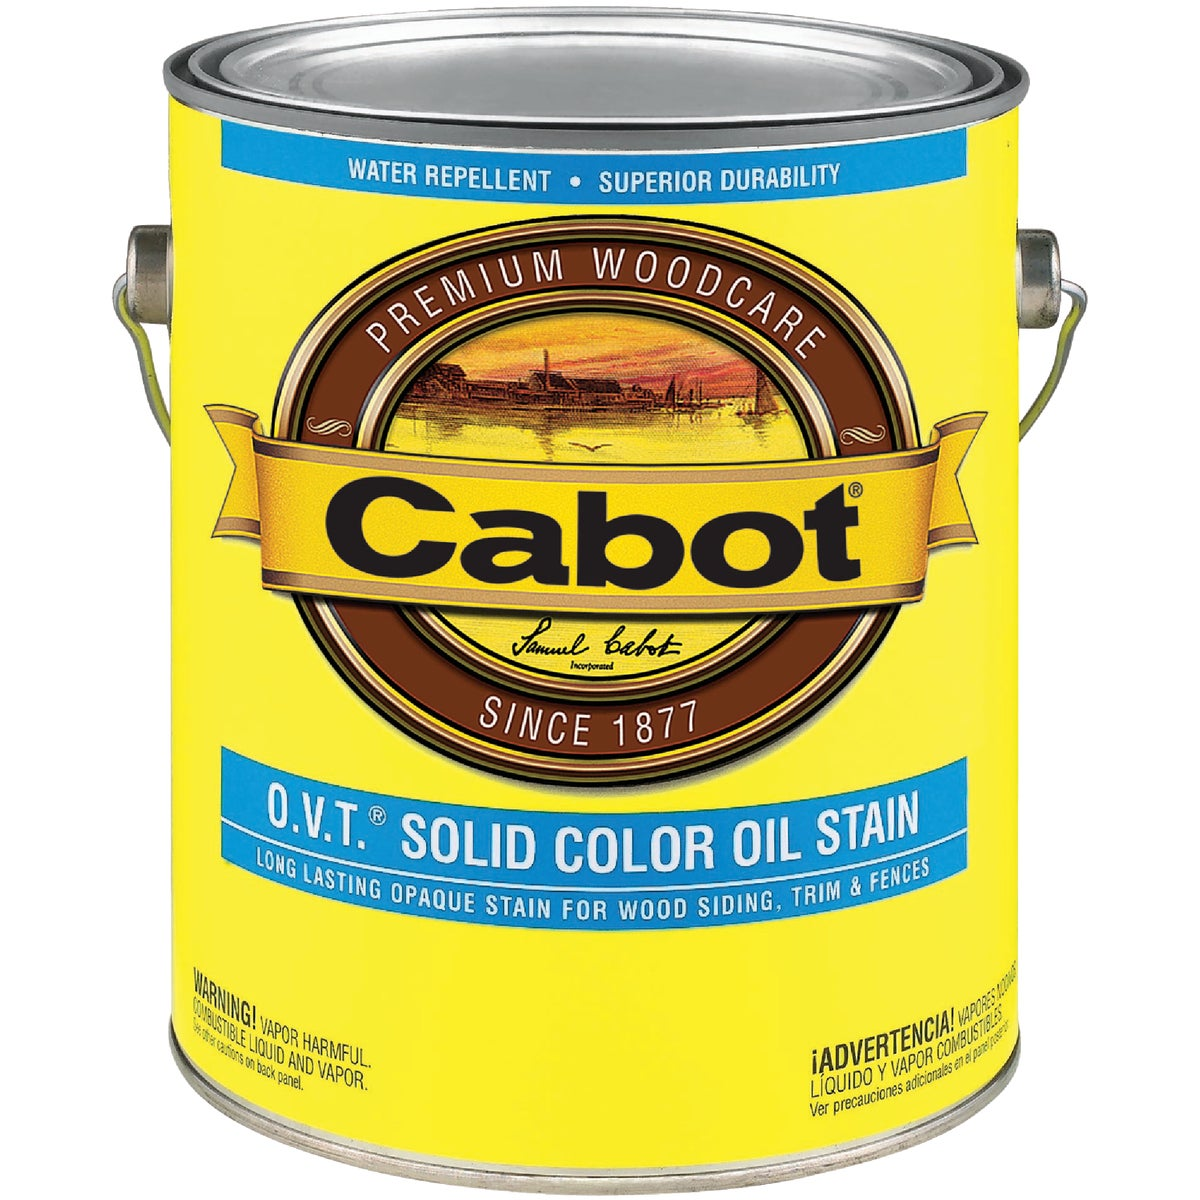 NEUT BS OVT SOLID STAIN - 140.0006506.007 by Valspar Corp